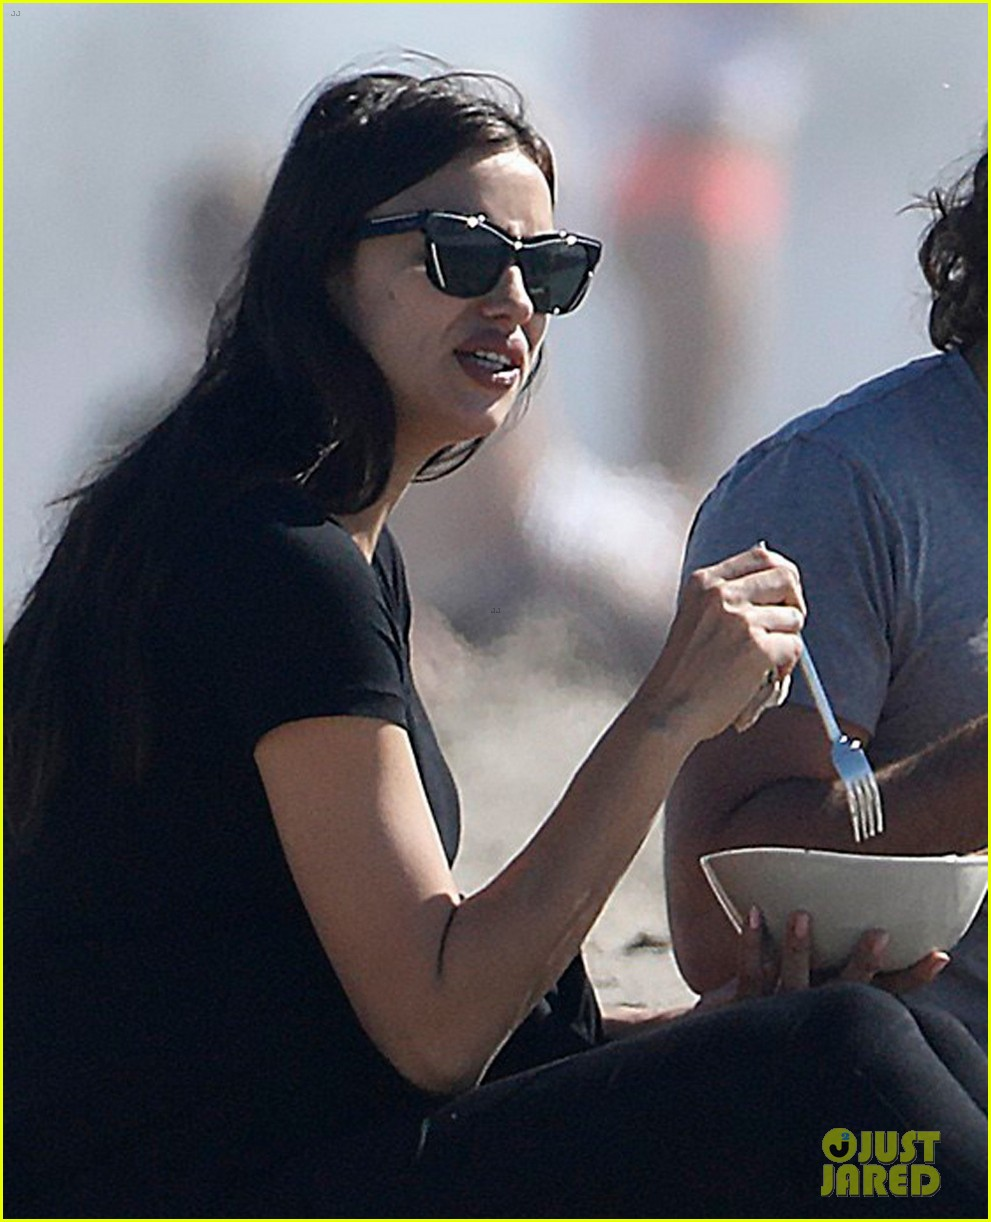 bradley-cooper-pregnant-irina-shayk-spend-a-romantic-day-at-the-beach-07